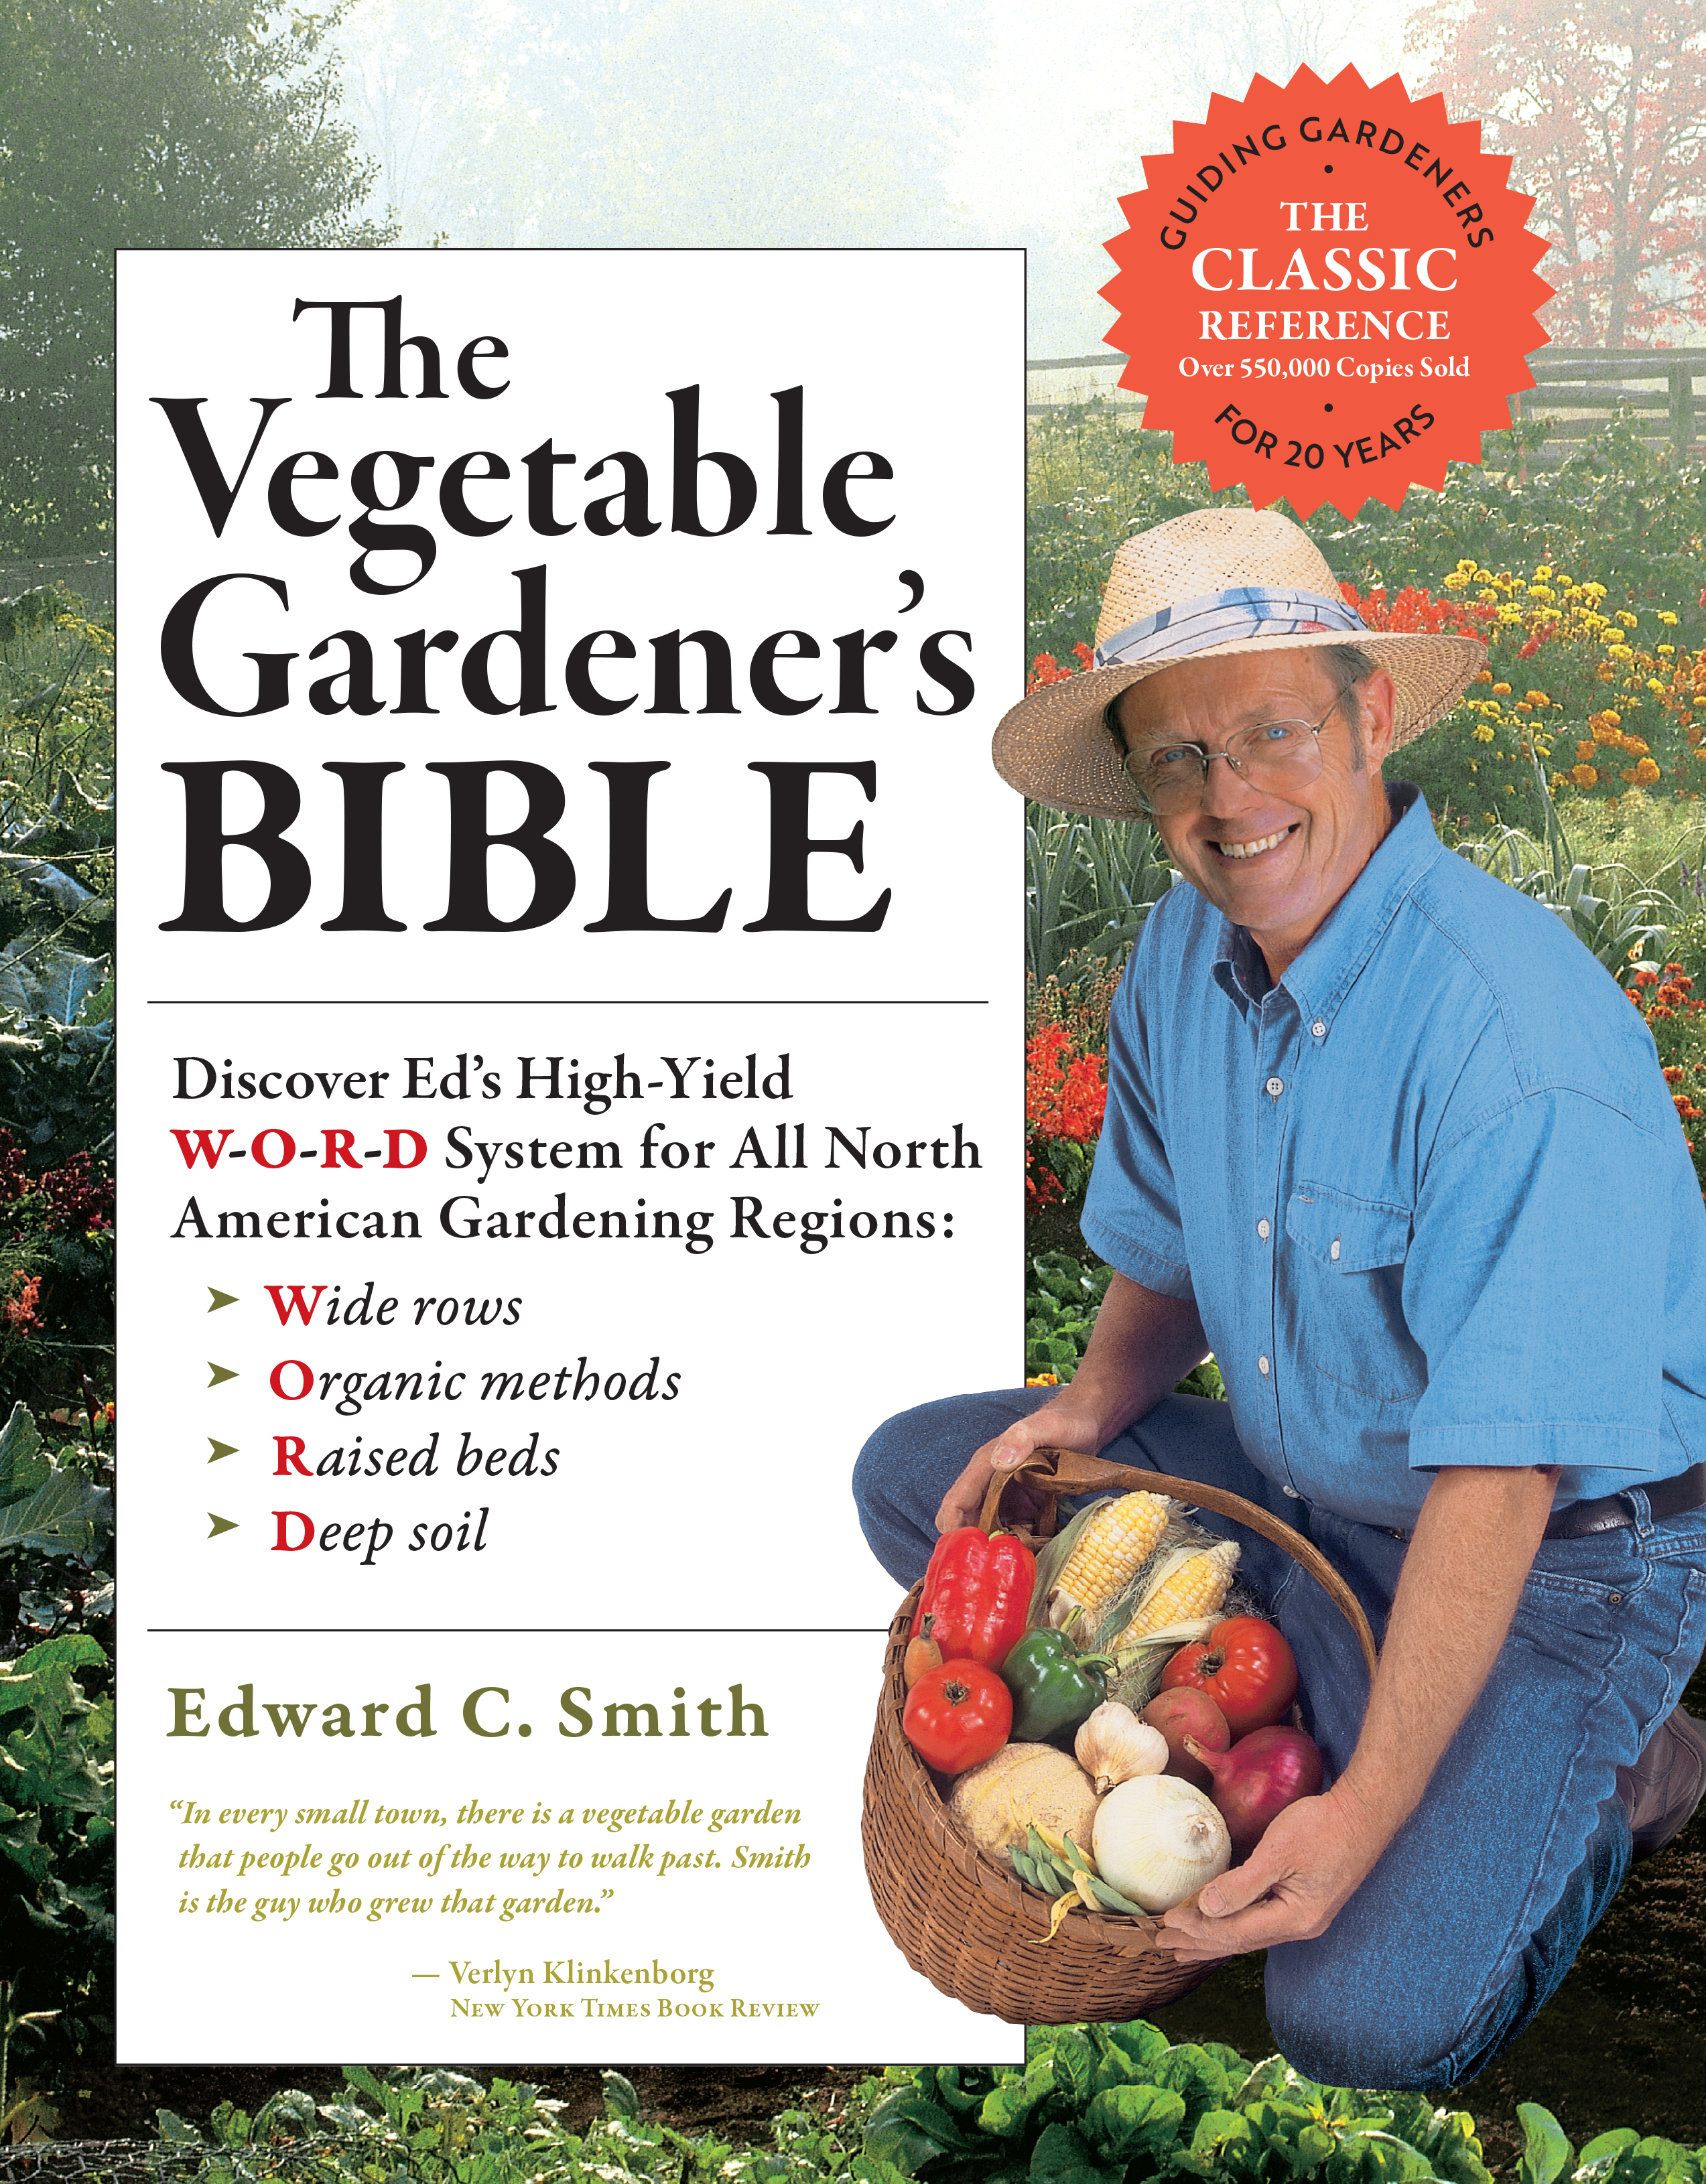 The Vegetable Gardener's Bible, 2nd Edition Discover Ed's High-Yield W-O-R-D System for All North American Gardening Regions: Wide Rows, Organic Methods, Raised Beds, Deep Soil - Edward C. Smith